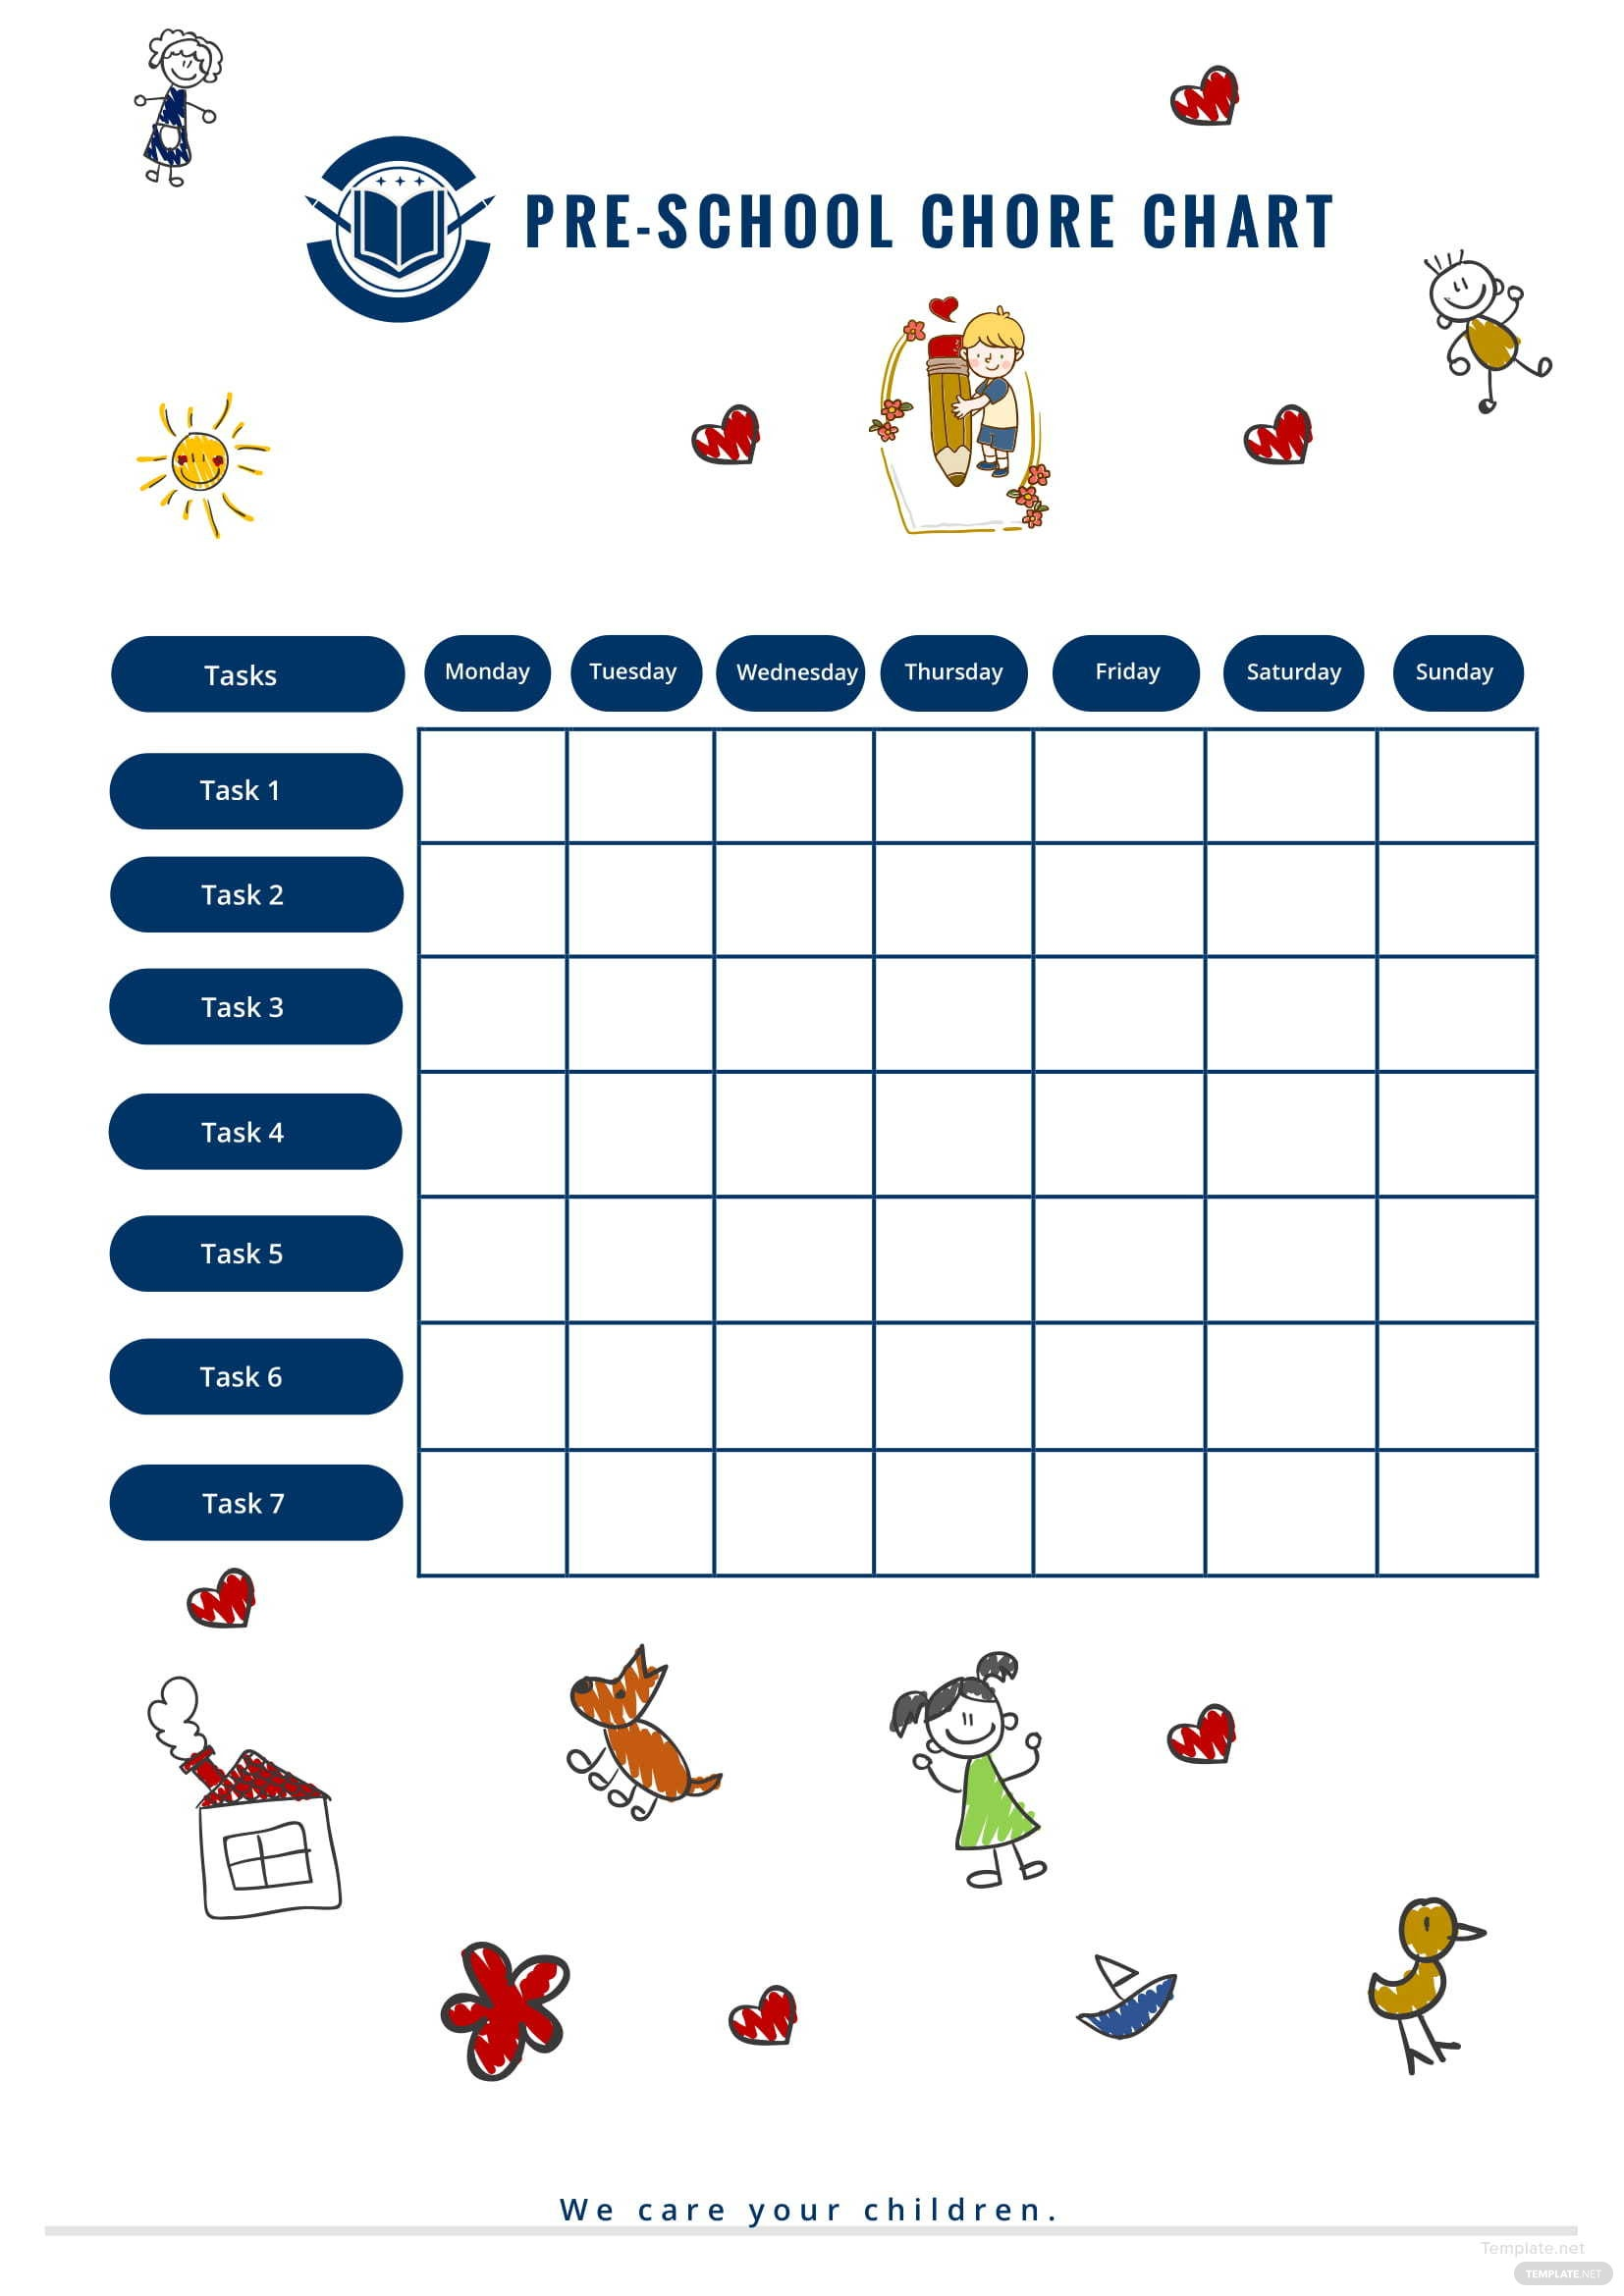 preschool chore chart template in microsoft word